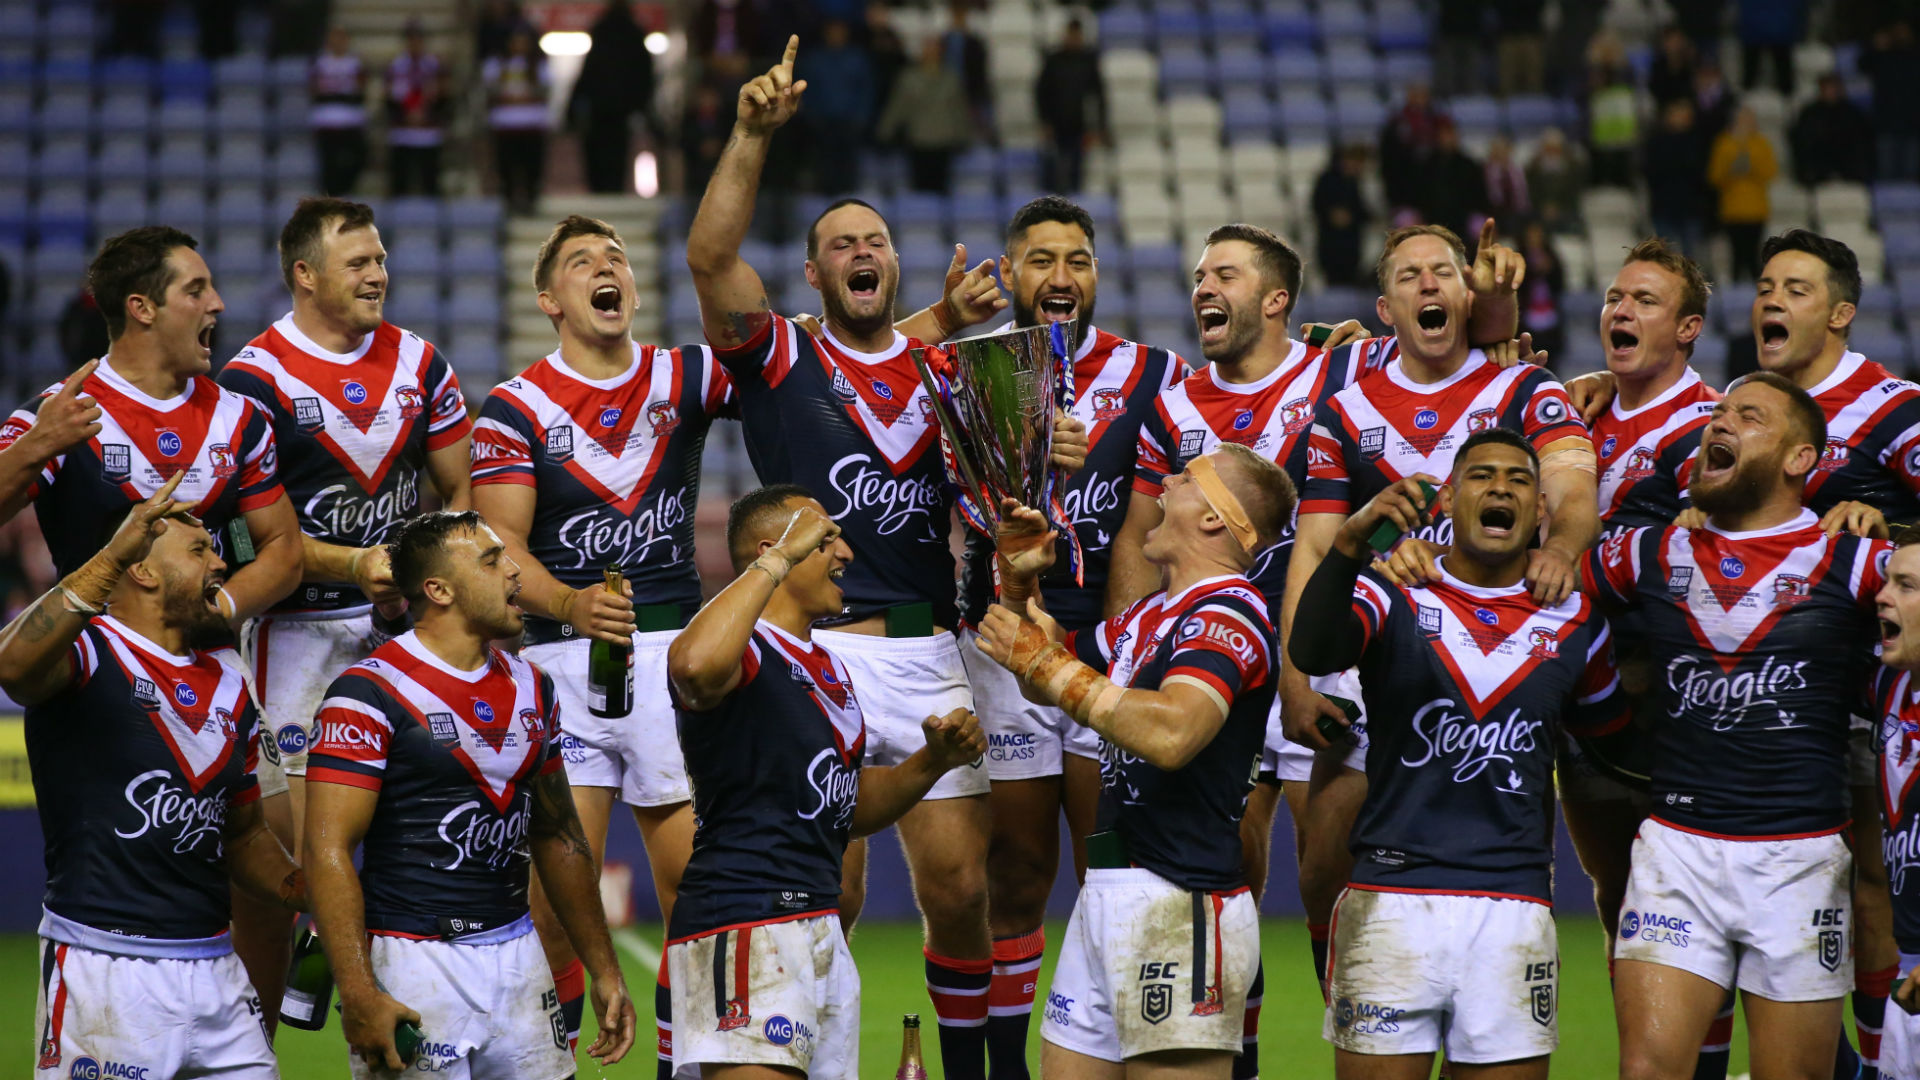 Saints to host Roosters in World Club Challenge on February 22